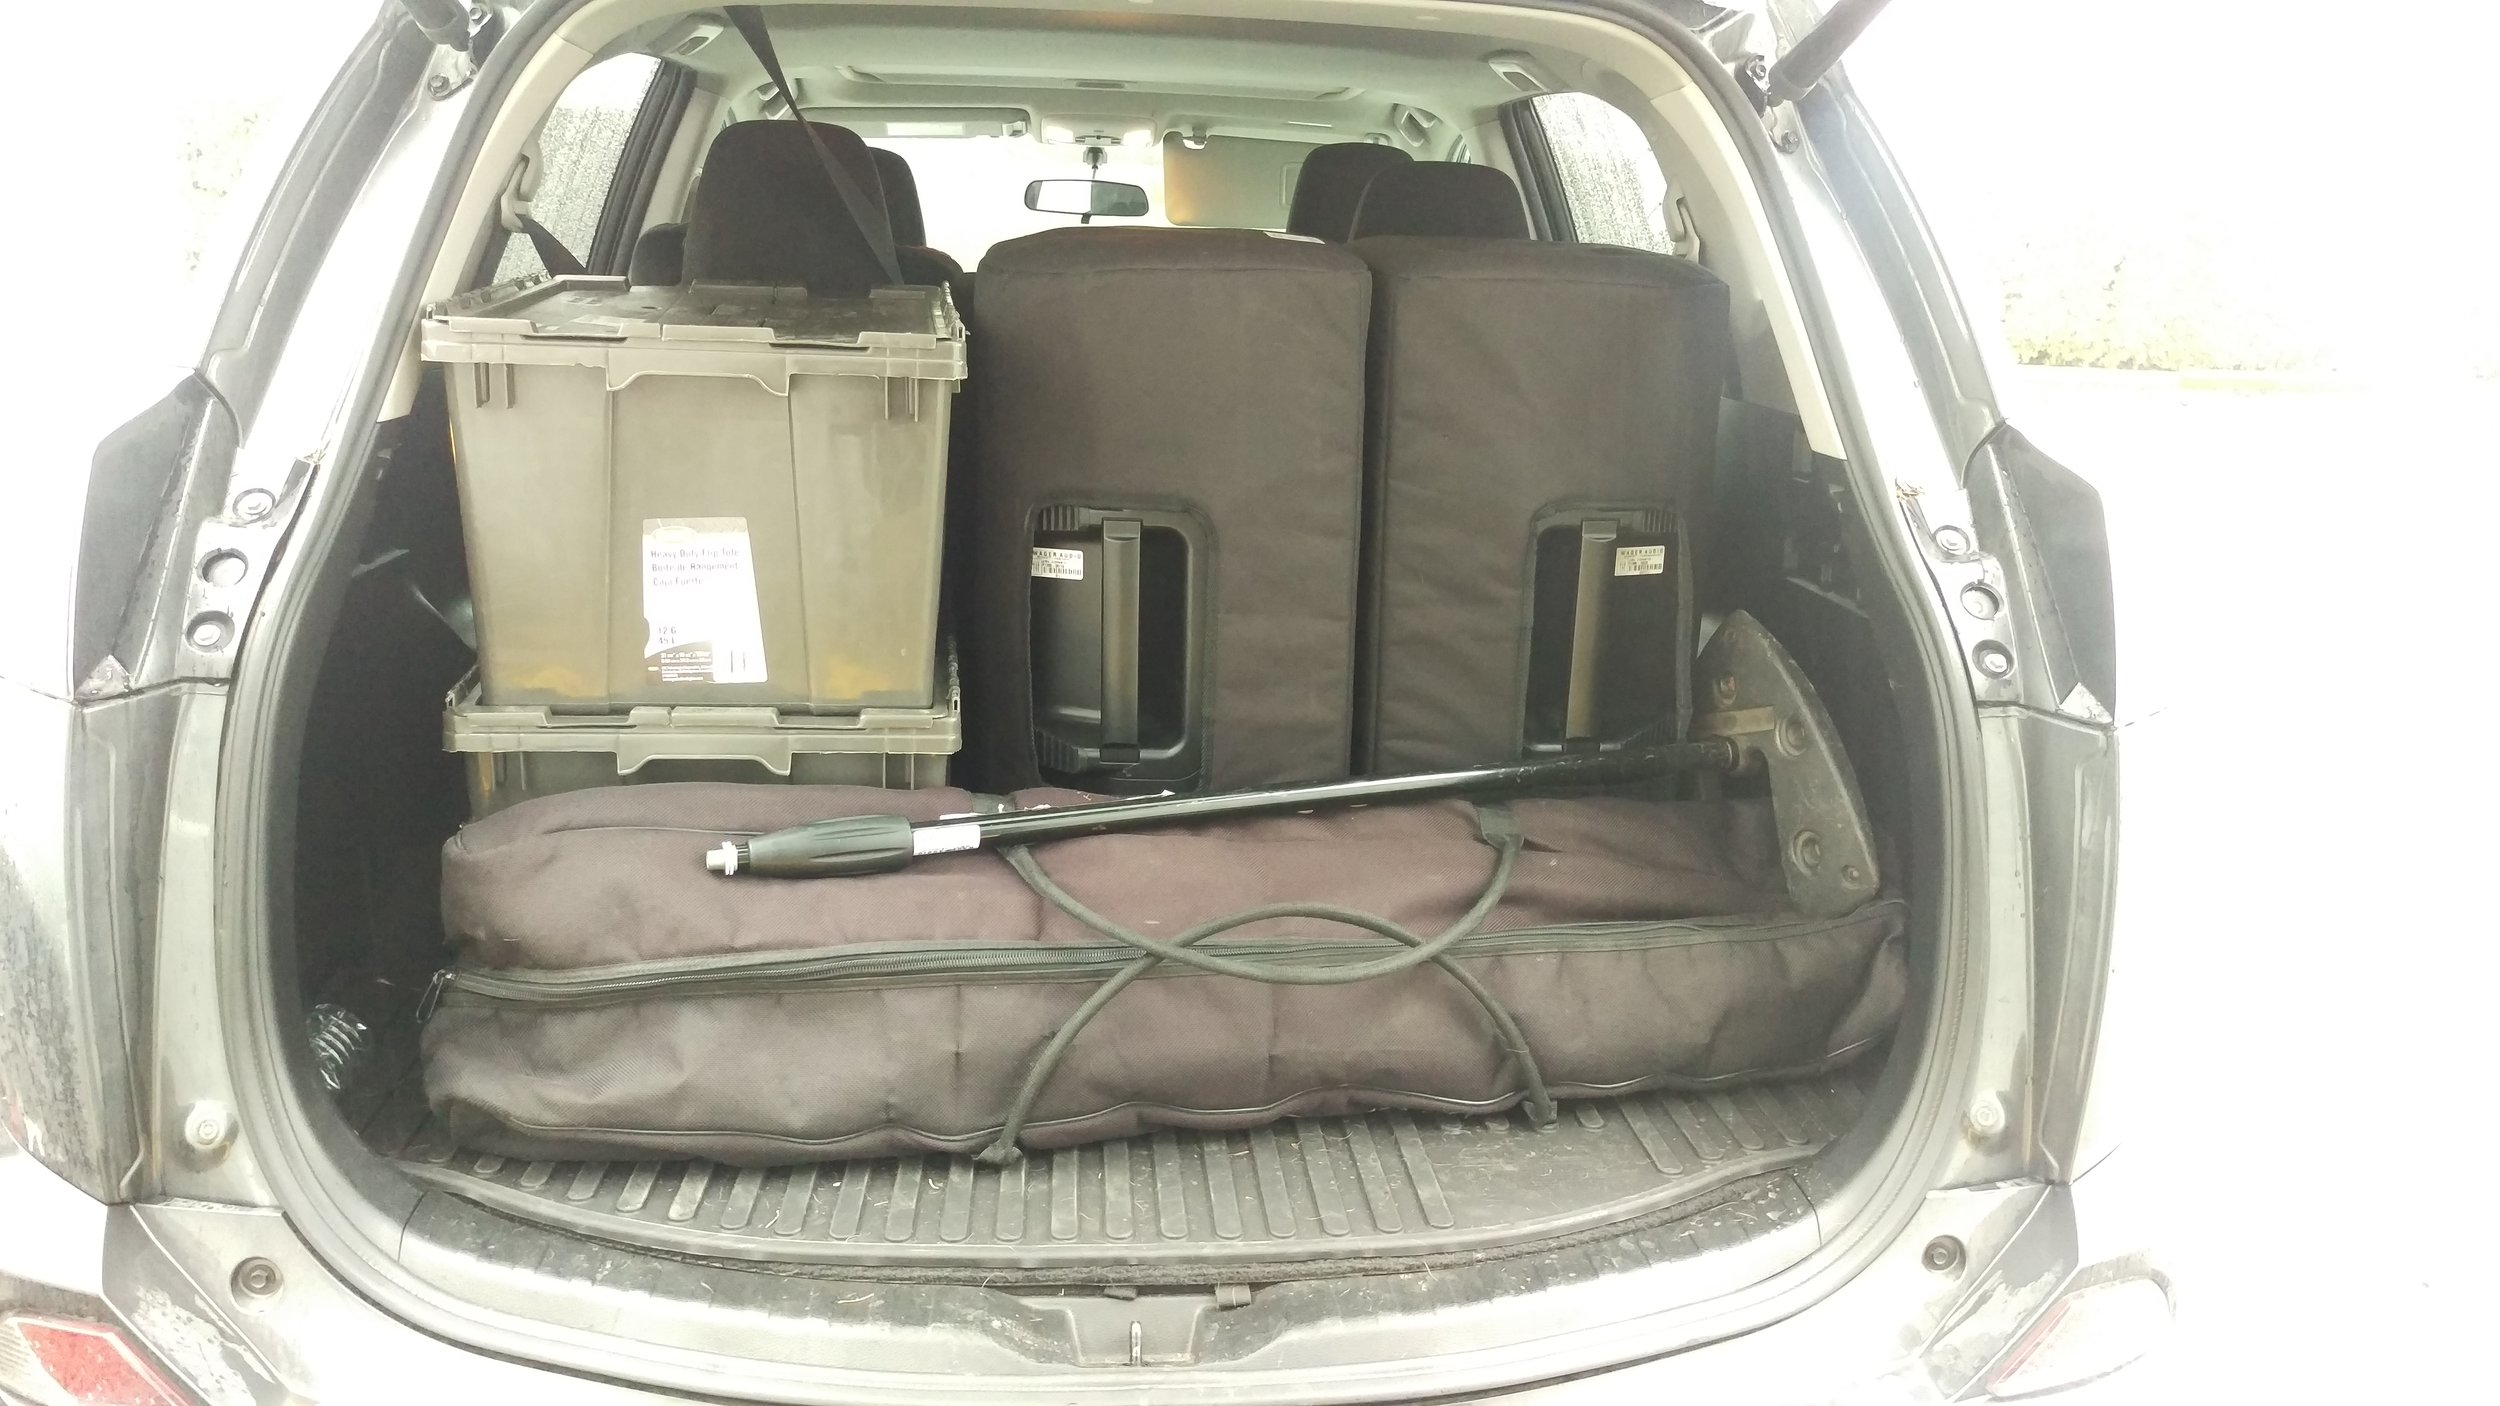 Two Powered Speakers w/ Mic package in the back of a Toyota Rav4